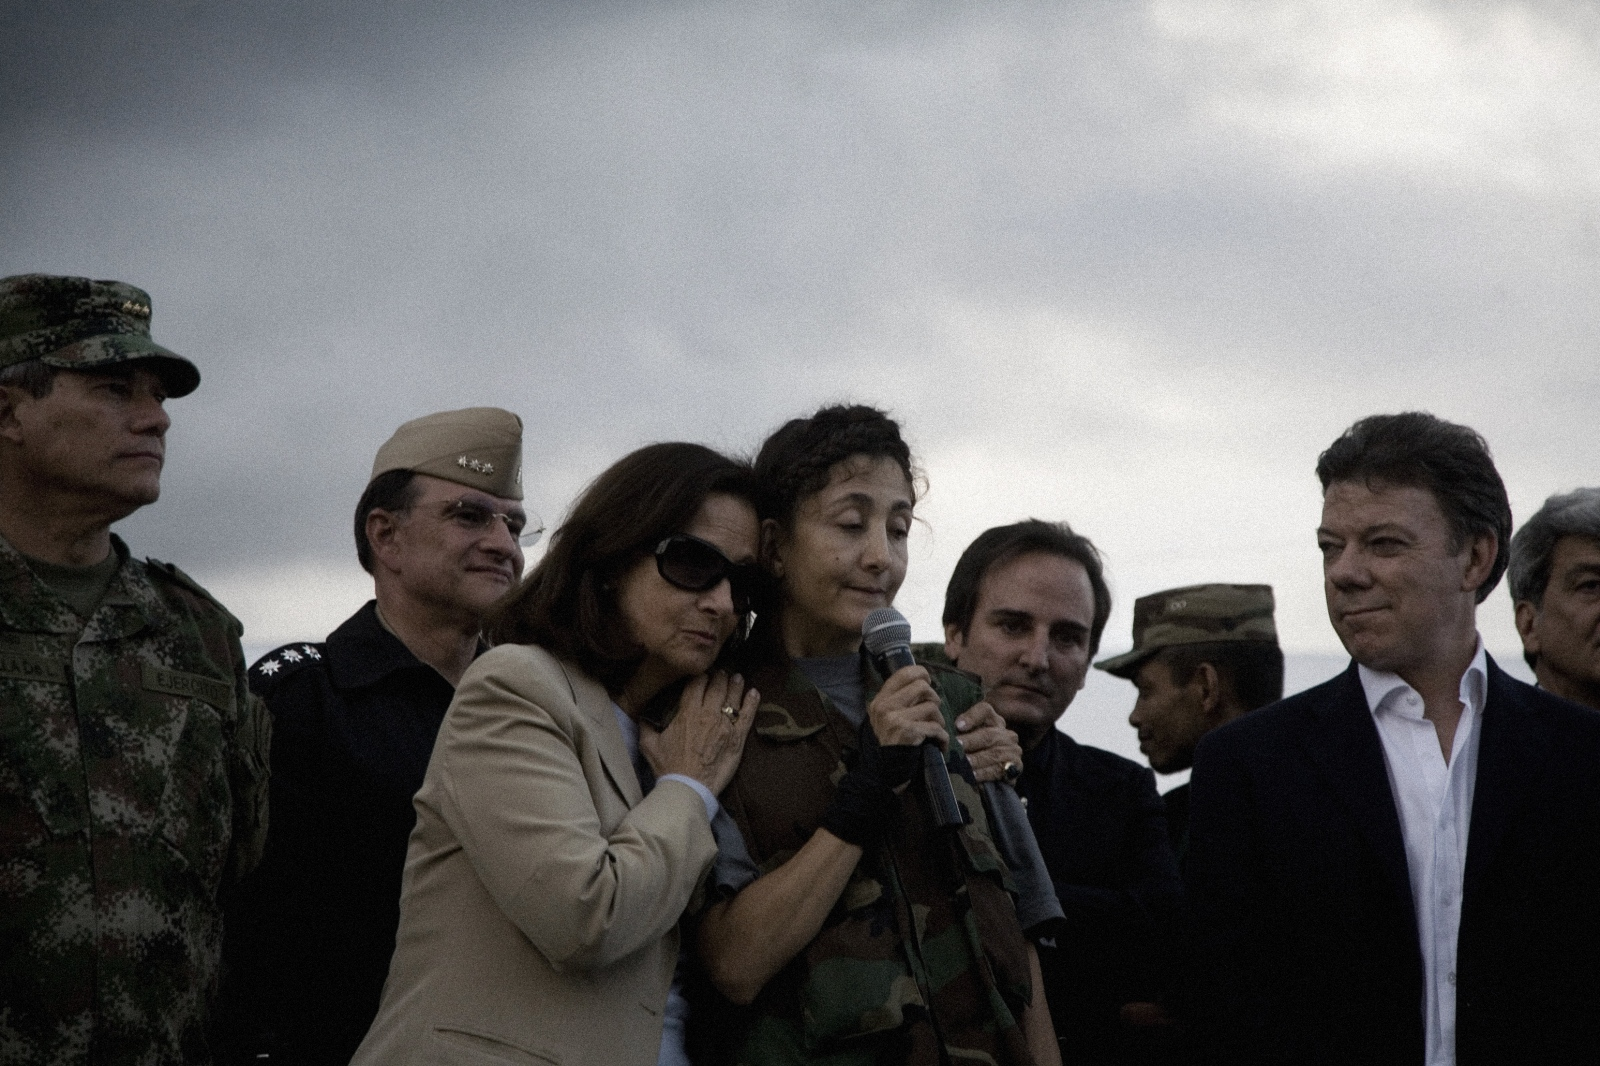 Ingrid Betancourt was kidnapped by the Revolutionary Armed Forces of Colombia (FARC) on 23 February 2002, and was rescued by Colombian security forces six and a half years later in 2008. The rescue operation, was call Operation Jaque, rescued Betancourt along with 14 other hostages (3 United States citizens, and 11 Colombian policemen and soldiers)